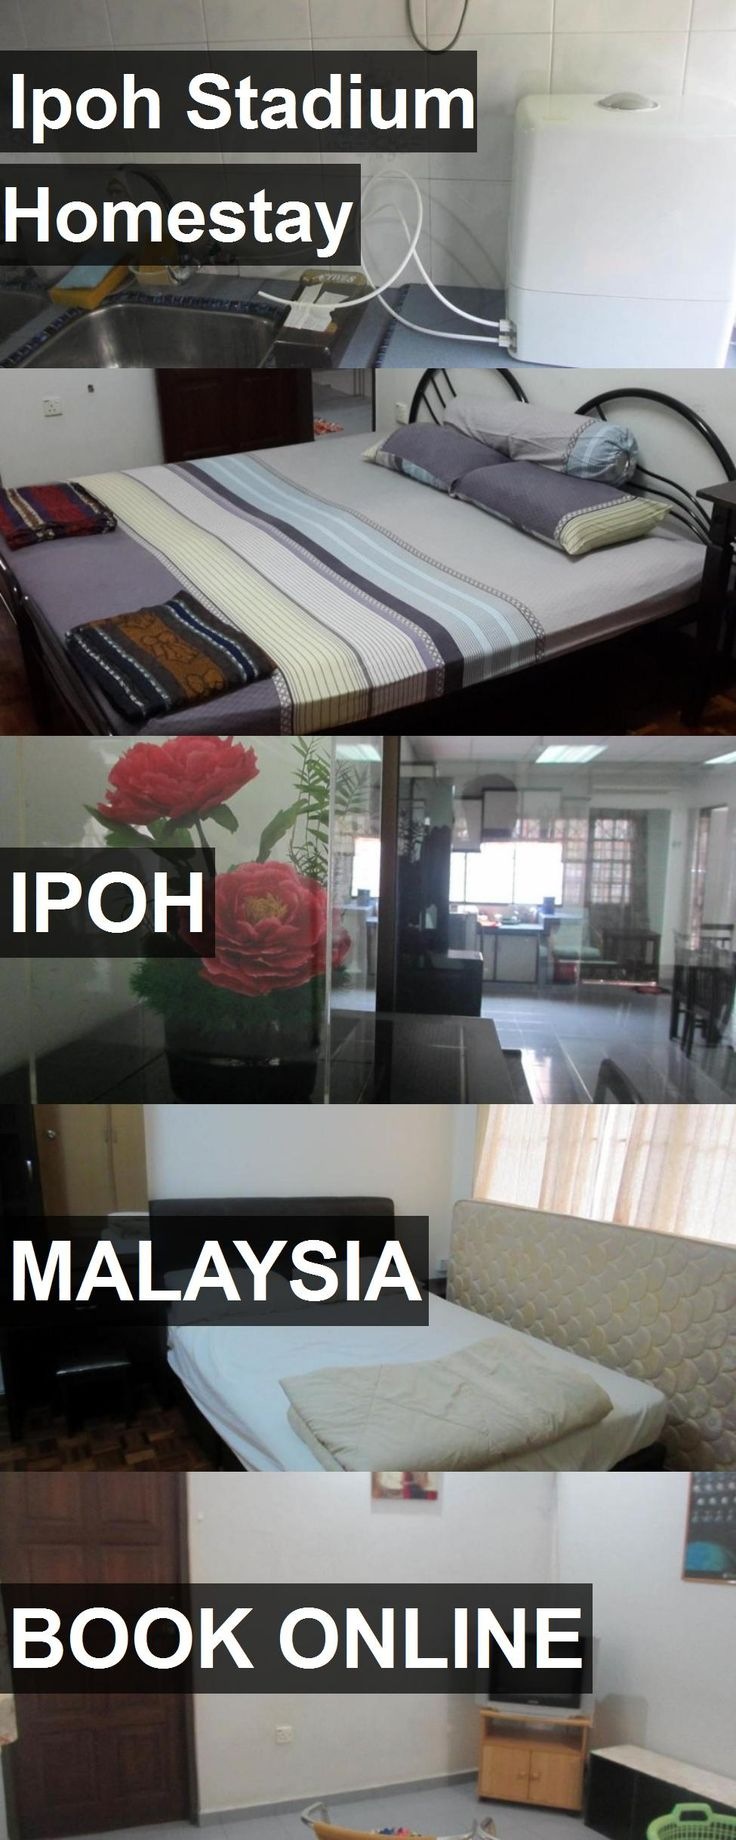 Hotel Ipoh Stadium Homestay in Ipoh, Malaysia. For more information, photos, reviews and best prices please follow the link. #Malaysia #Ipoh #travel #vacation #hotel